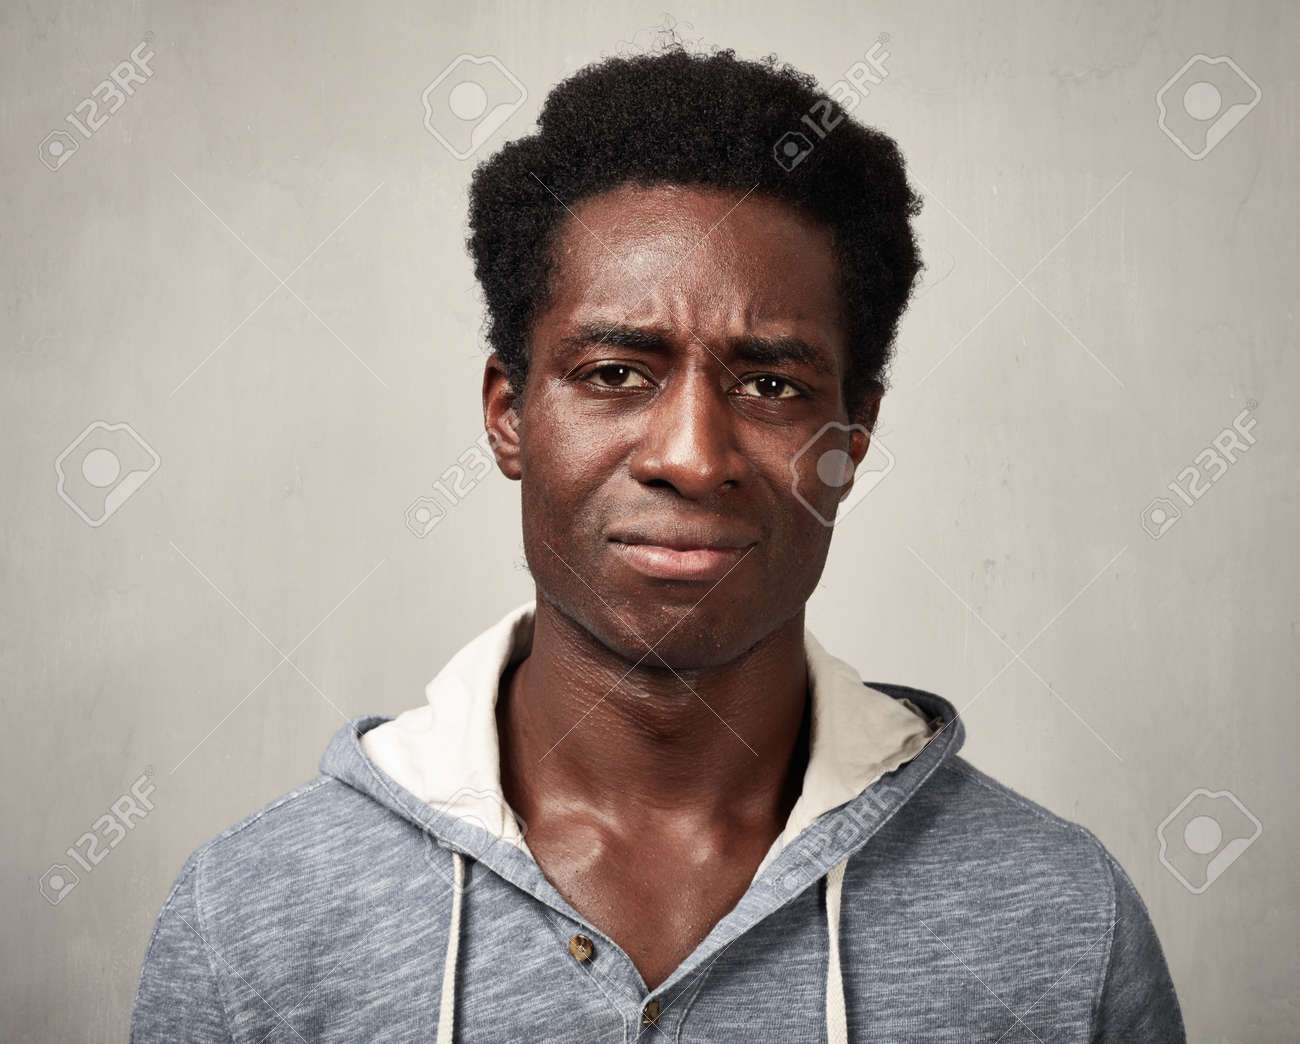 Sad Black Man Stock Photo Picture And Royalty Free Image Image 70332027